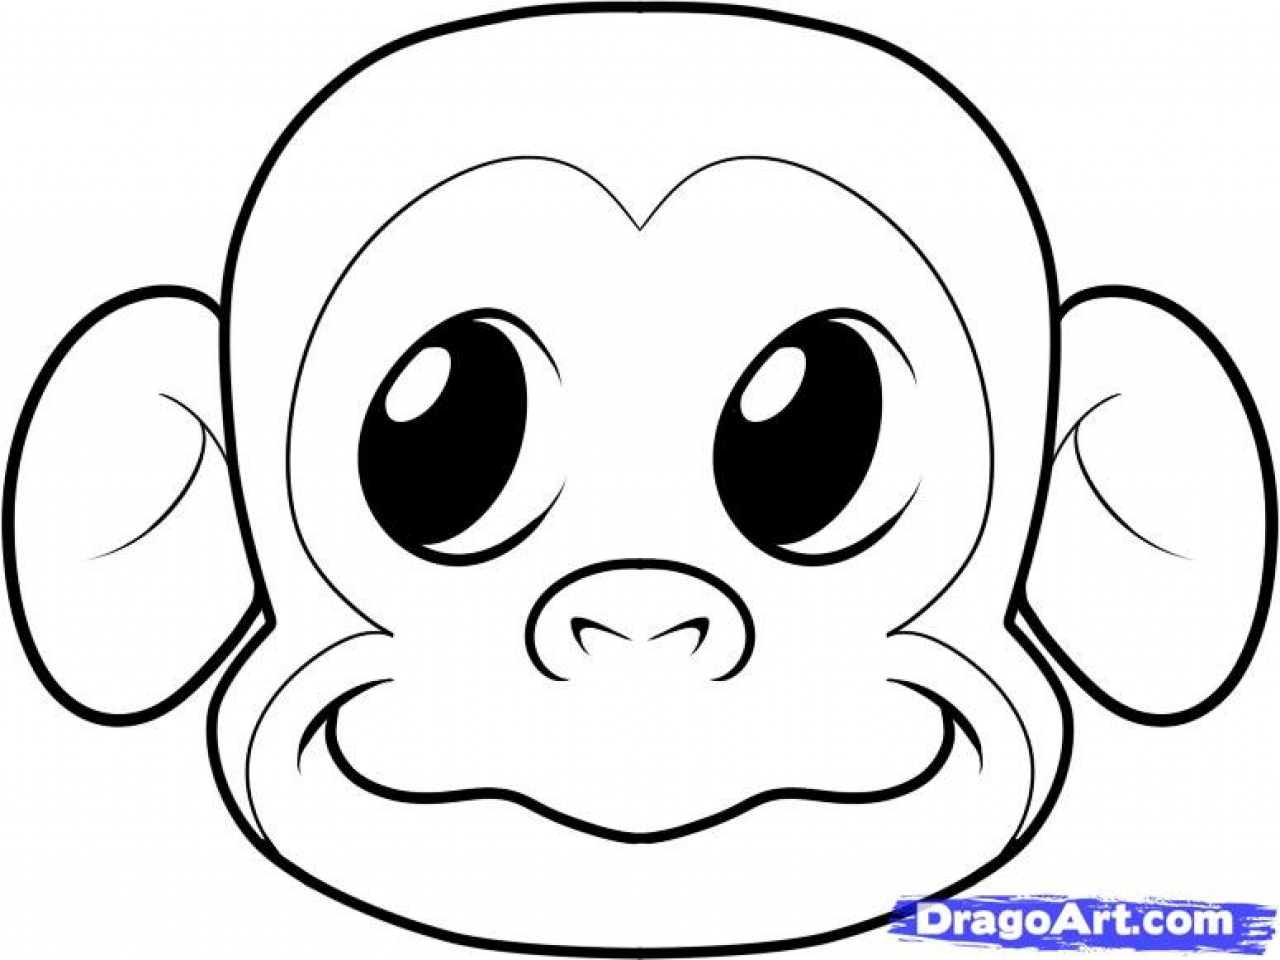 1280x960 Gorilla Face Coloring, How To Draw A Monkey Face Step By Step